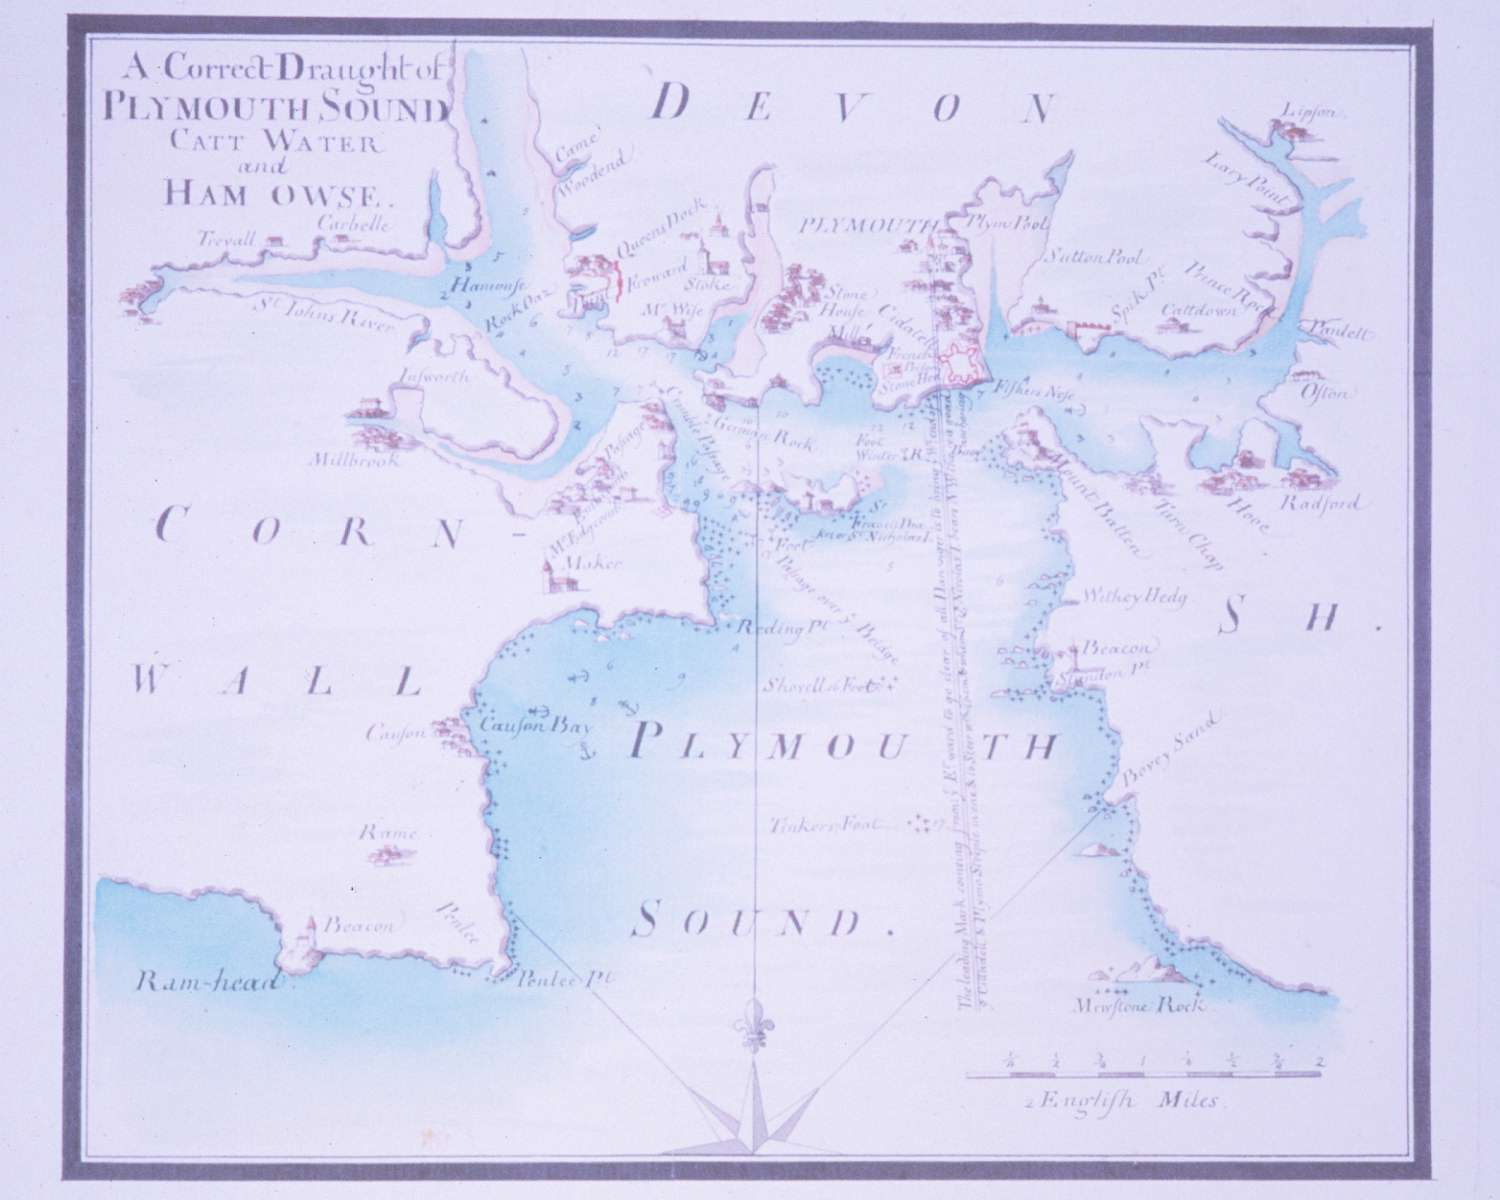 shows the many waterways and anchorages in plymouth sound and the hamoaze map of south west england